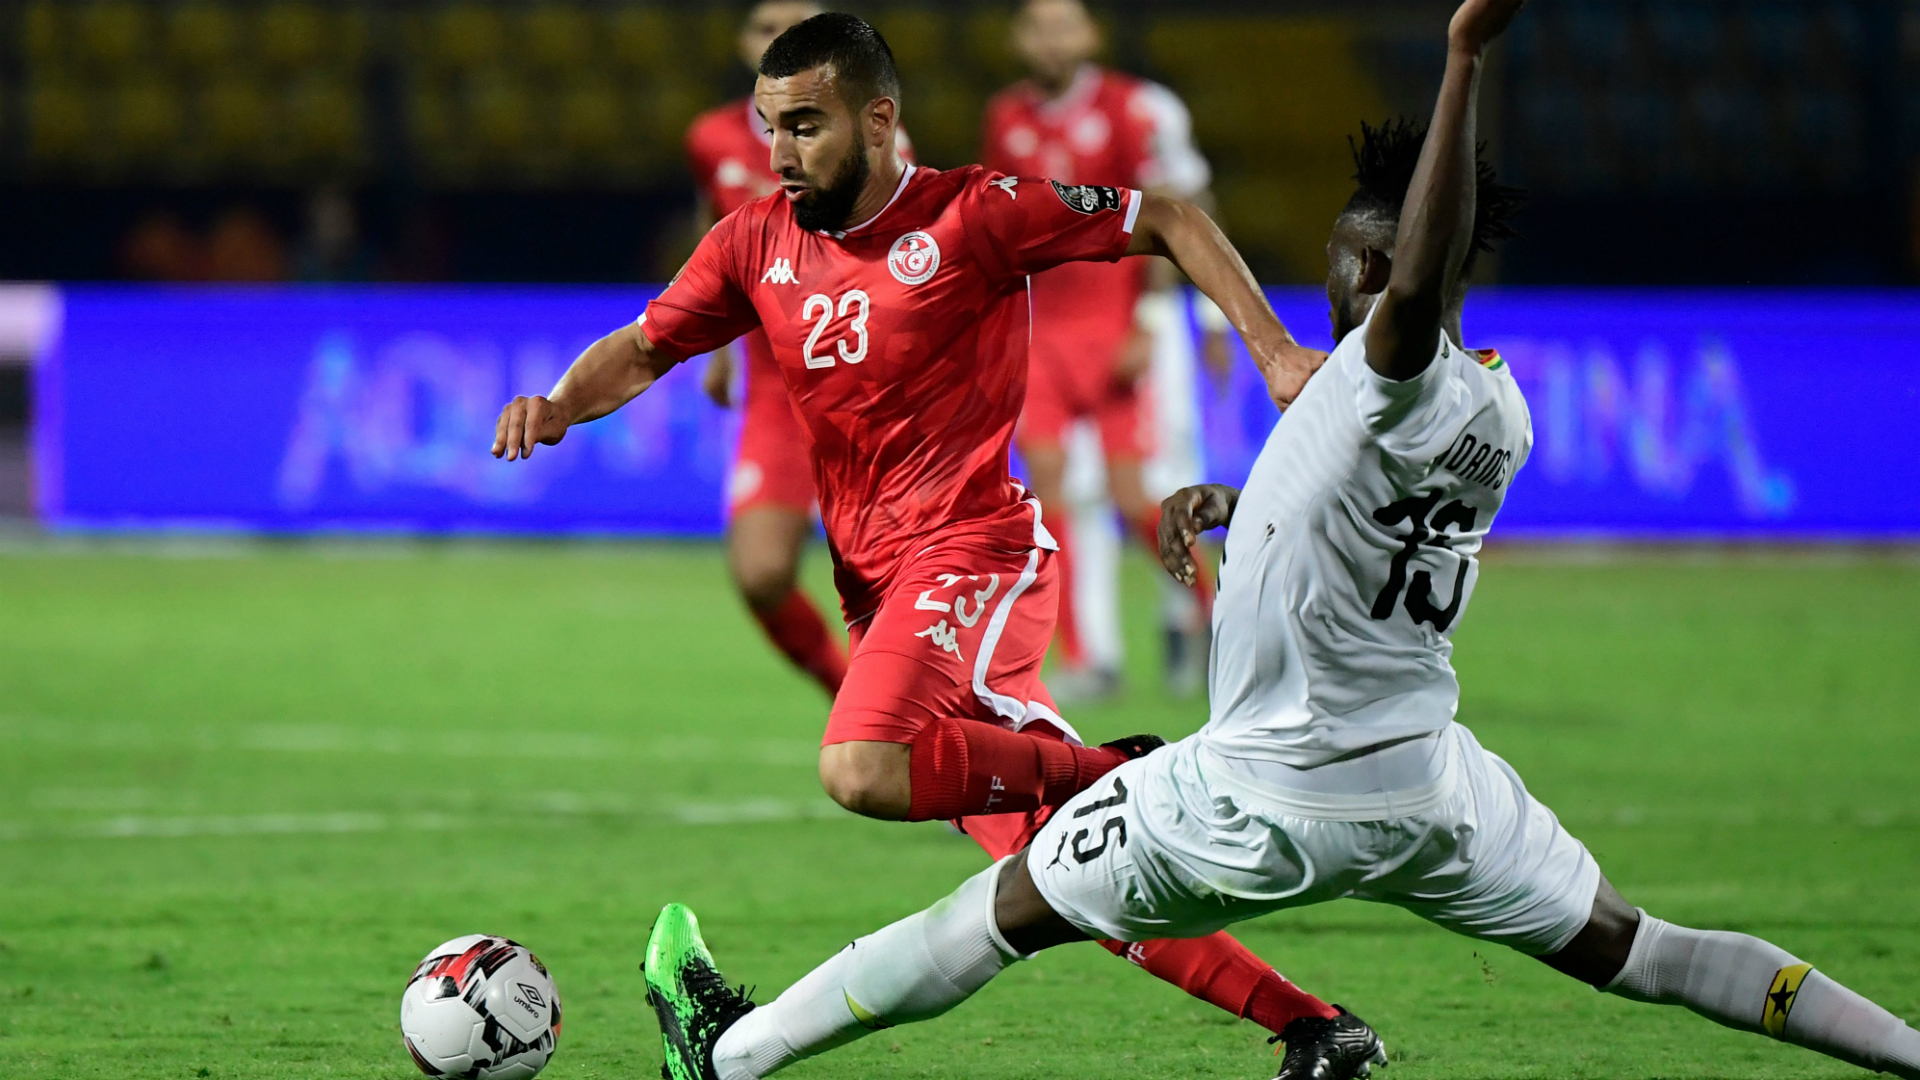 Afcon 2019: Tunisia must not get carried away by victory over Ghana - Sliti